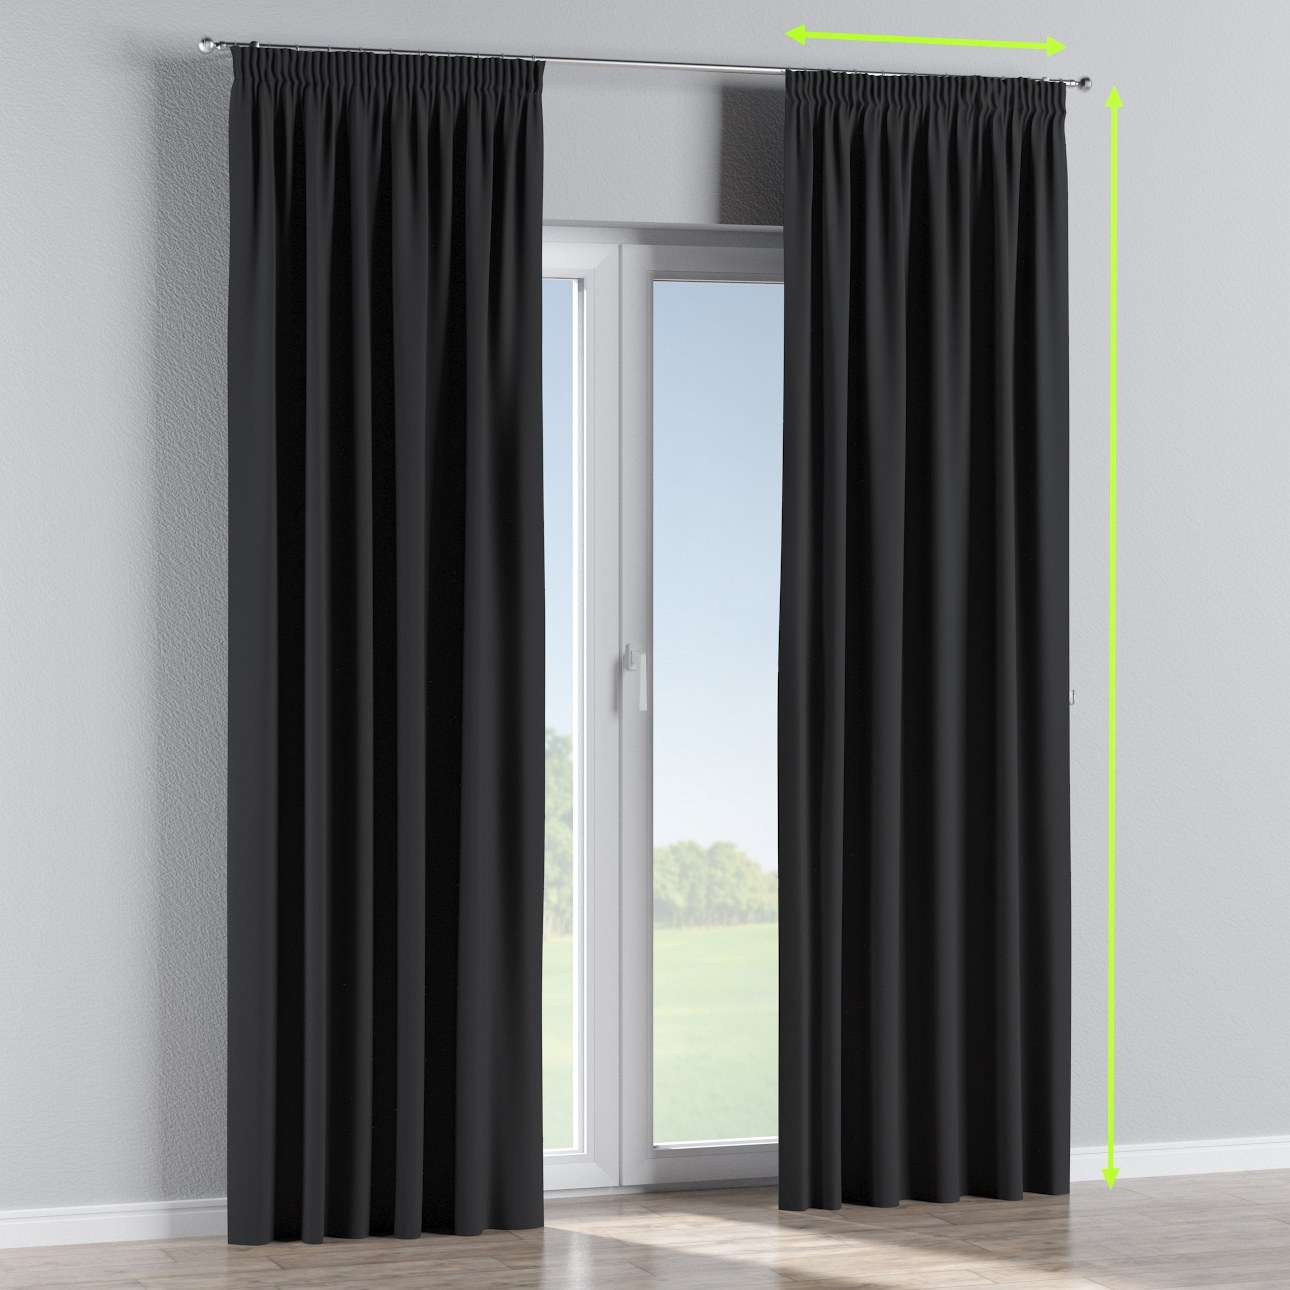 Pencil pleat curtain in collection Blackout, fabric: 269-99